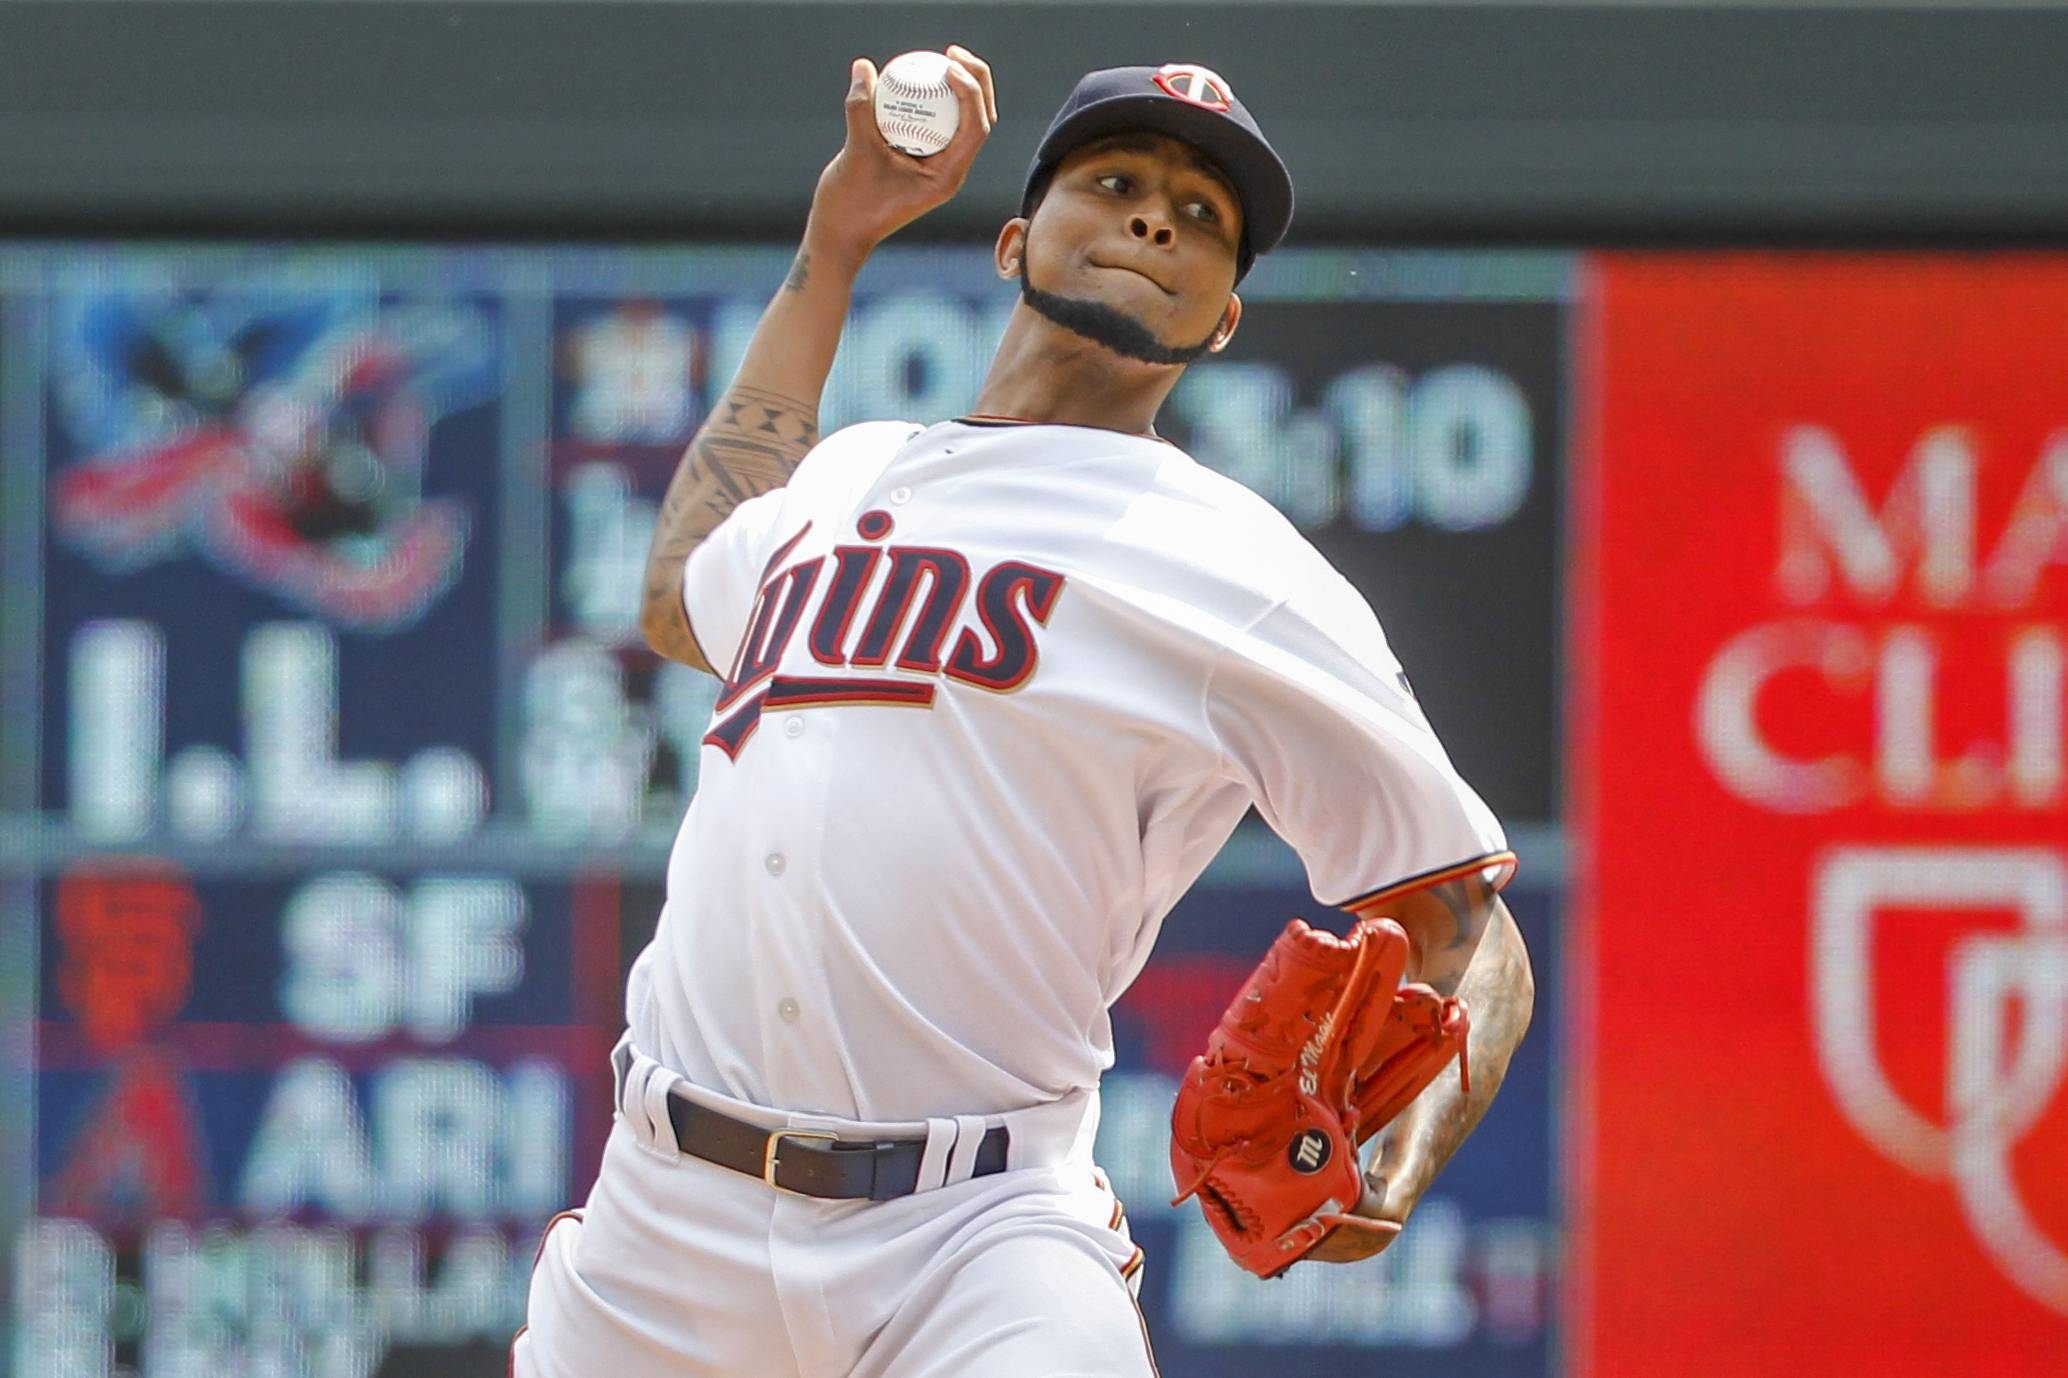 A person familiar with the situation says the Chicago White Sox have agreed to a minor-league contract with veteran right-hander Ervin Santana. The agreement is pending a successful physical.